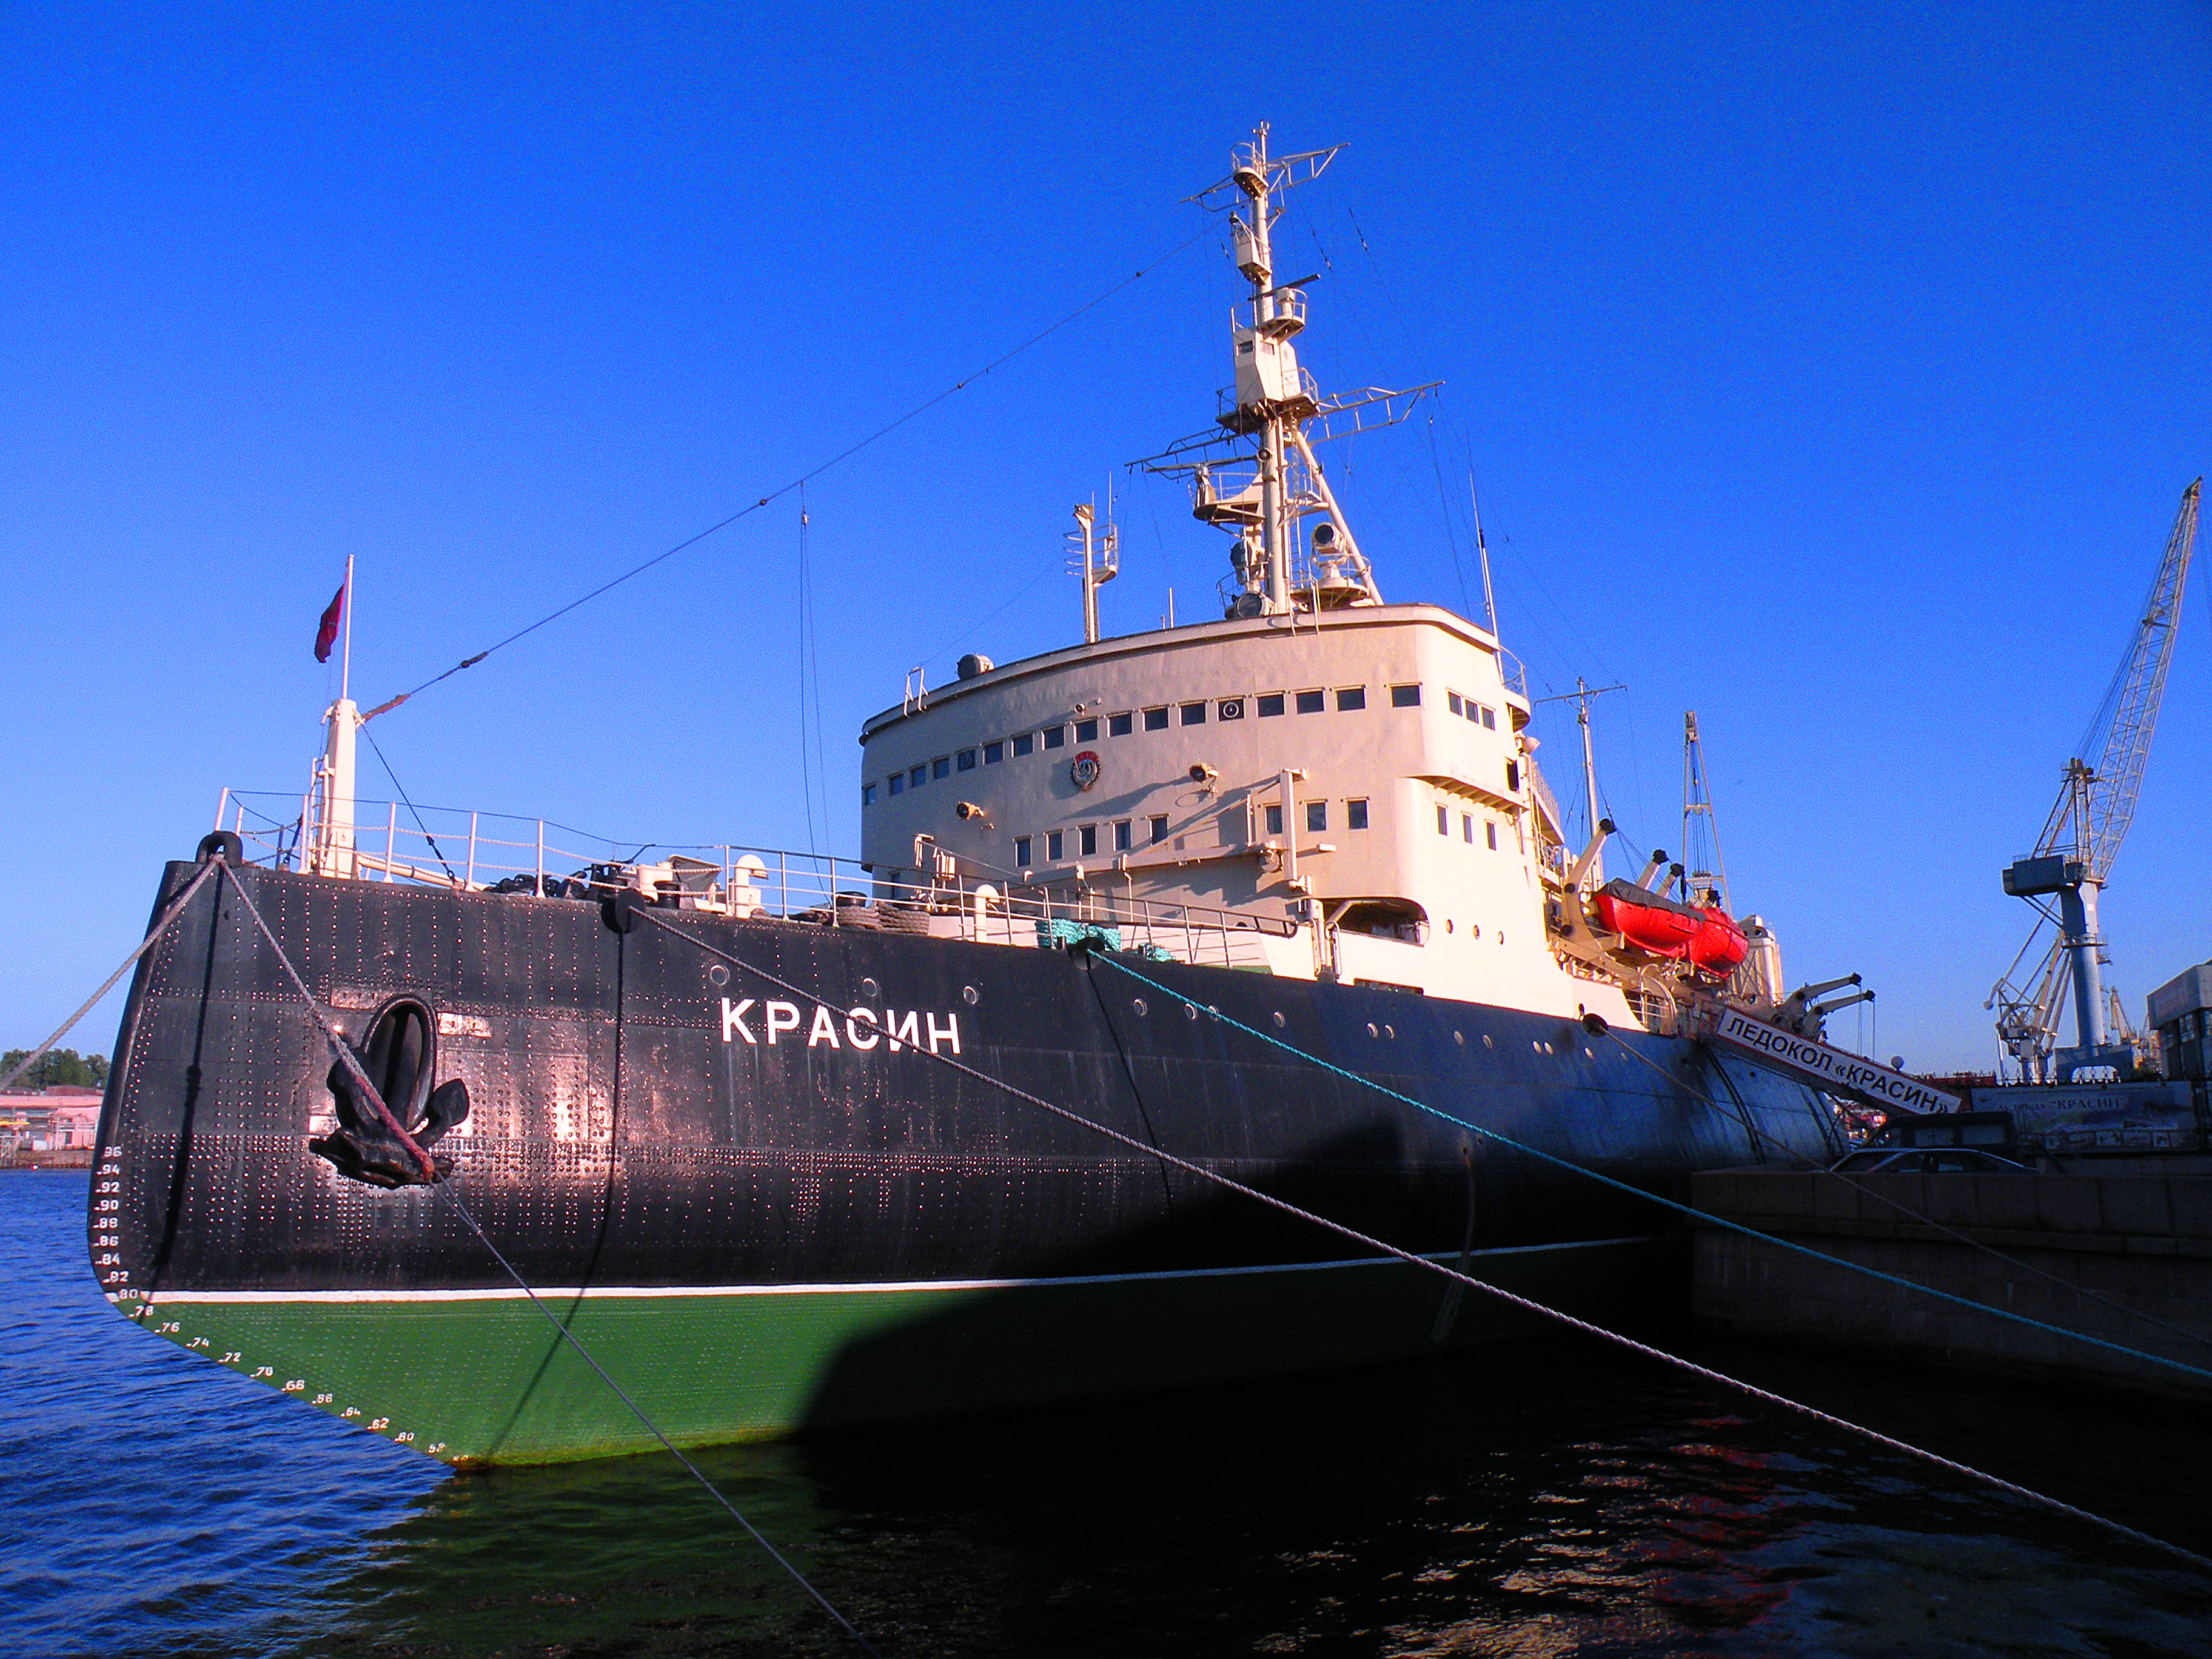 Icebreaker Krassin survived all of the Wind-class breakers she helped inspire